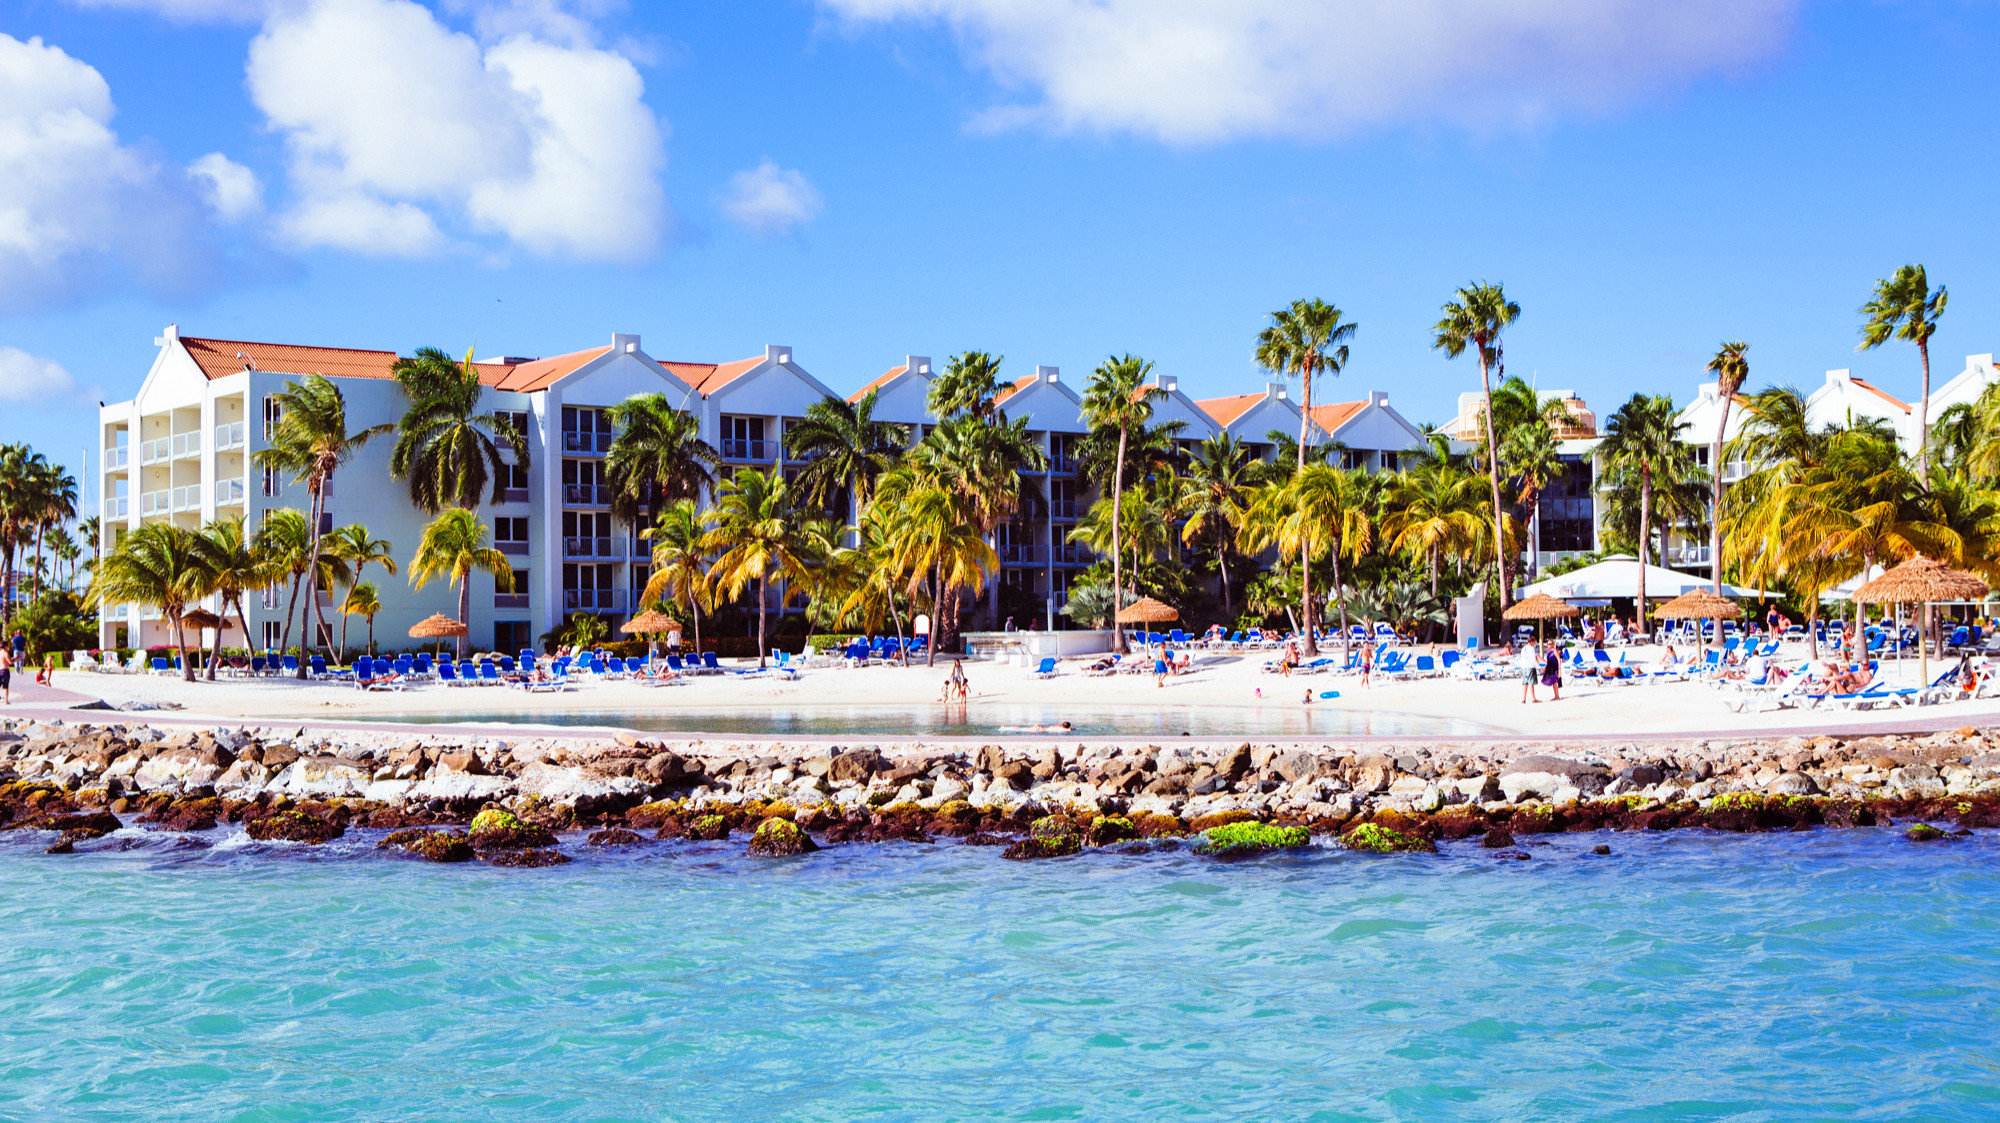 Architecture Aruba Beachfront Buildings Exterior Grounds Hotels sky outdoor water Beach leisure Resort vacation Sea caribbean swimming pool Water park bay amusement park Lagoon Harbor Island park lined swimming colorful sandy